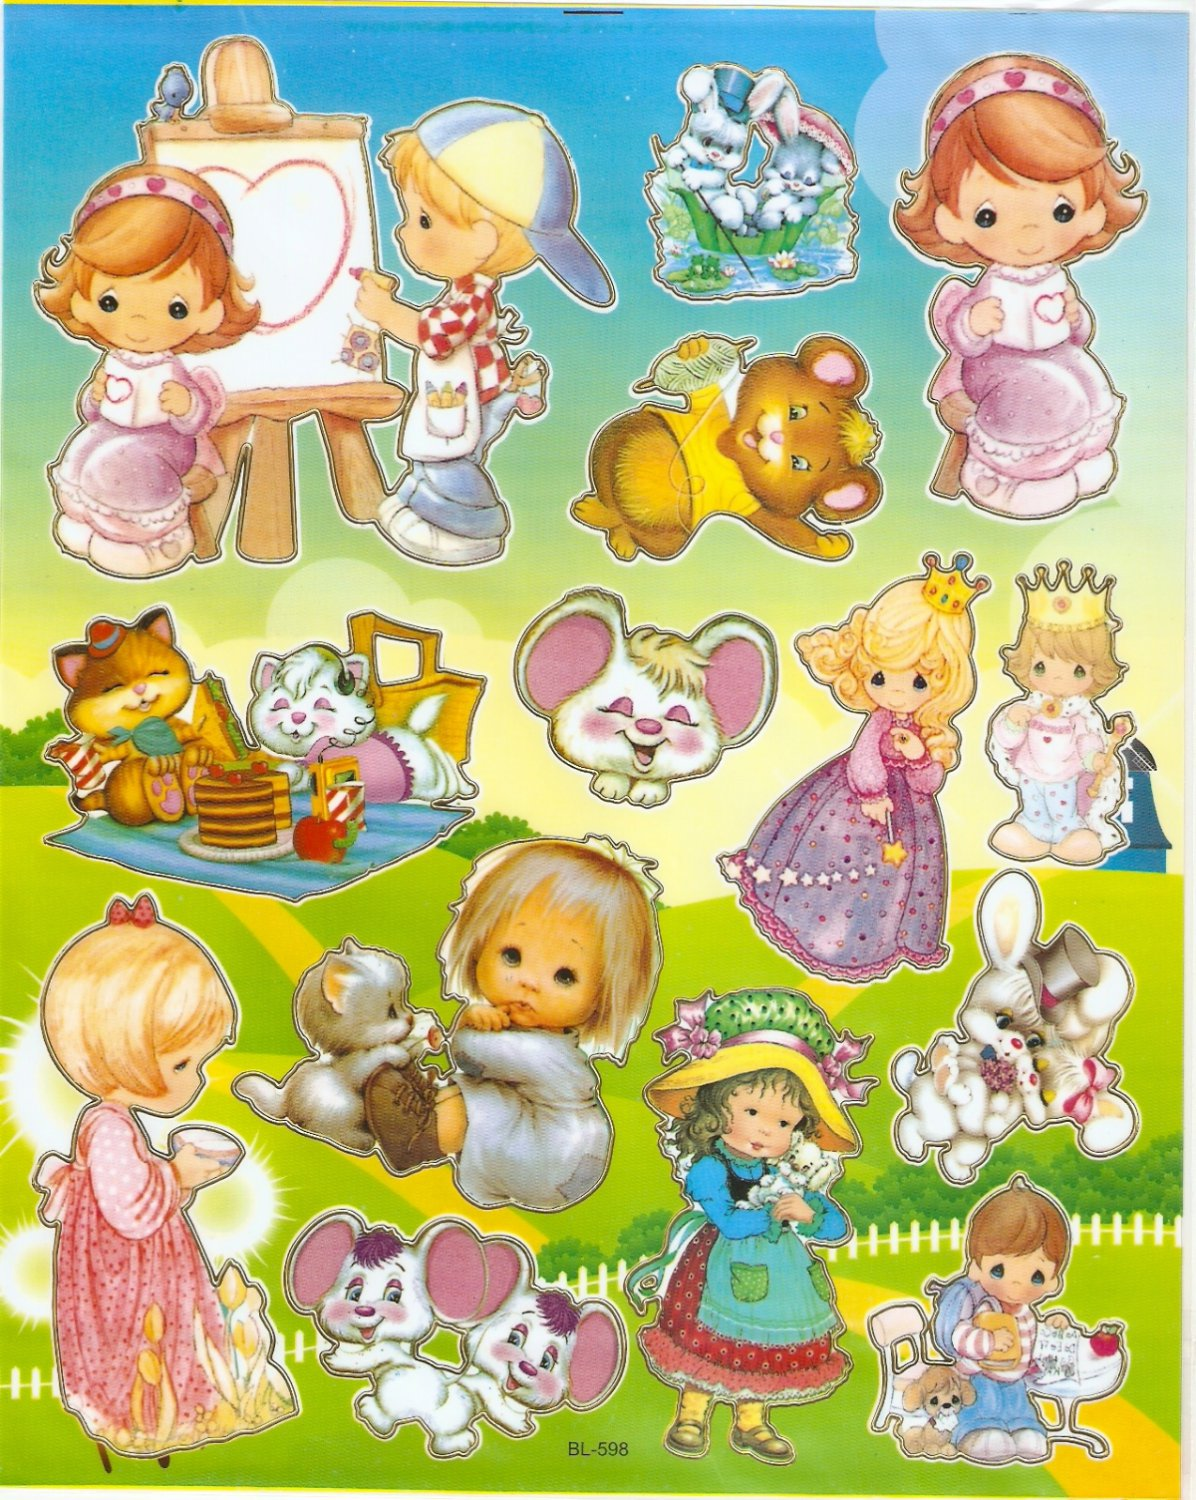 10 Big sheets Precious Moment Sticker Buy 2 lots Bonus 1 #bl598